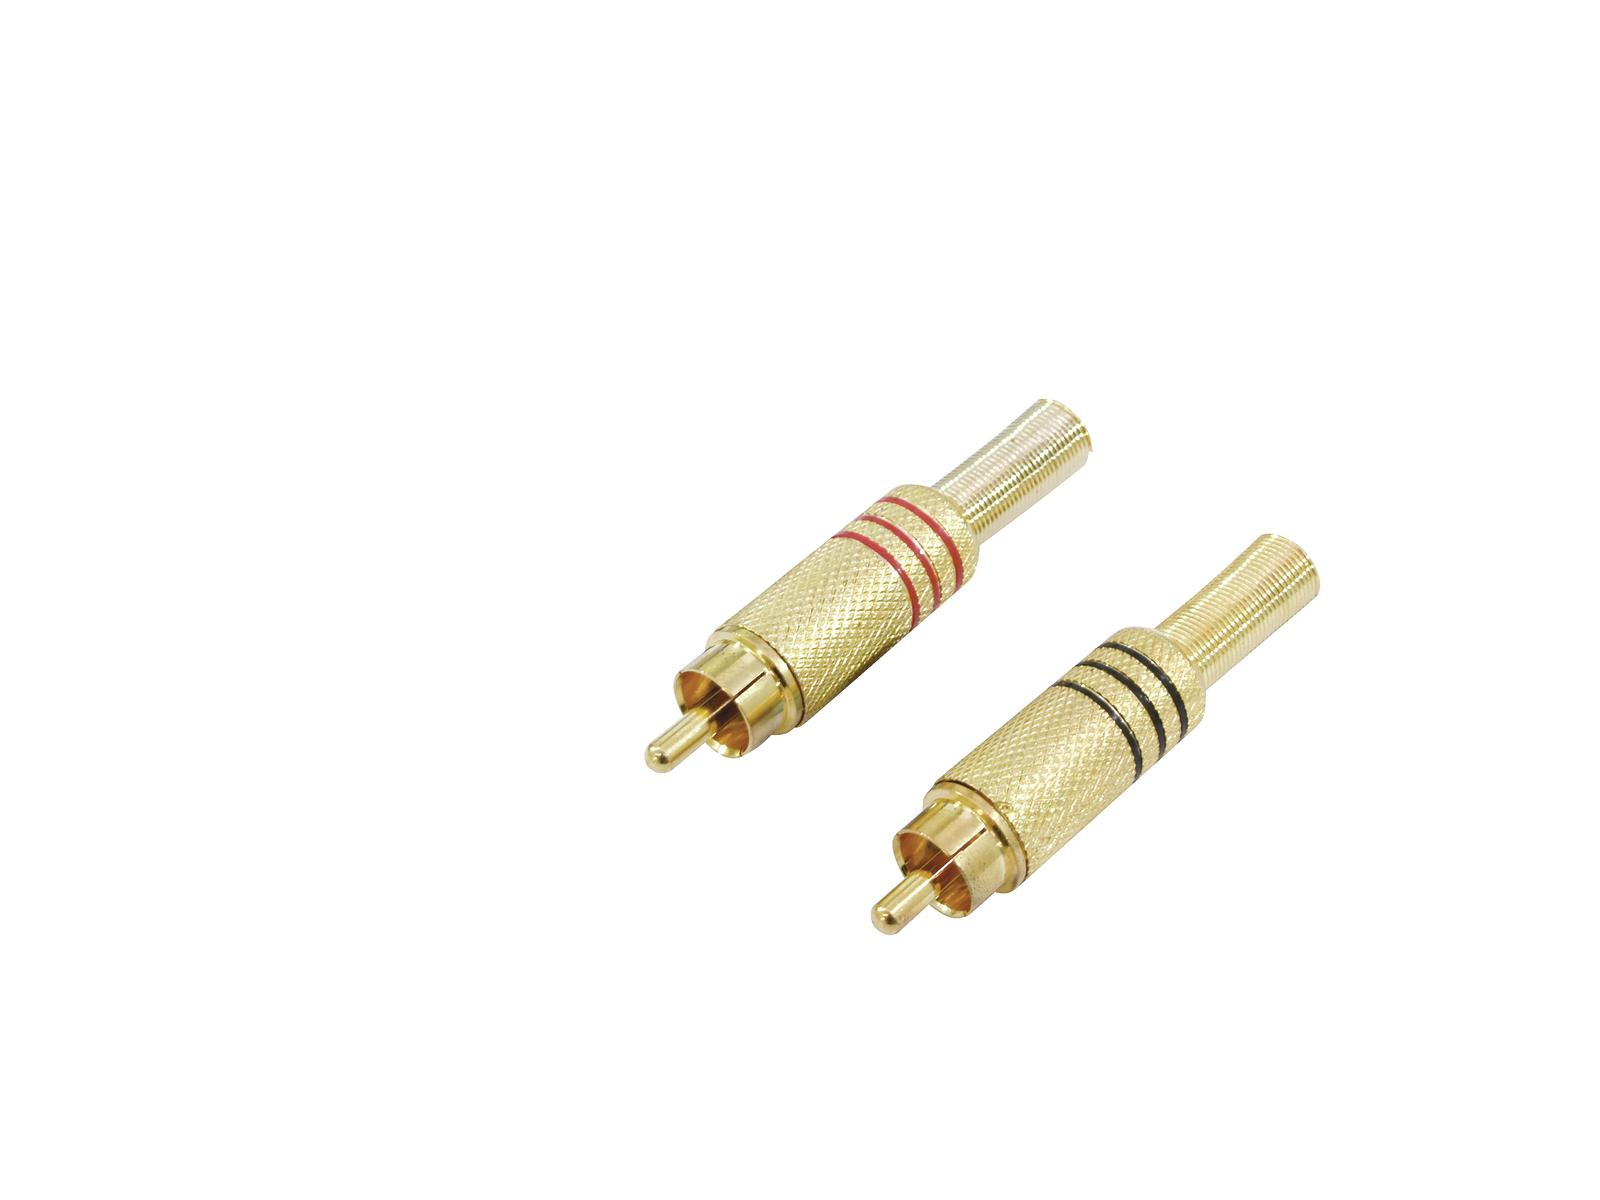 OMNITRONIC spina RCA placcati in oro 7mm rd/bk 2x